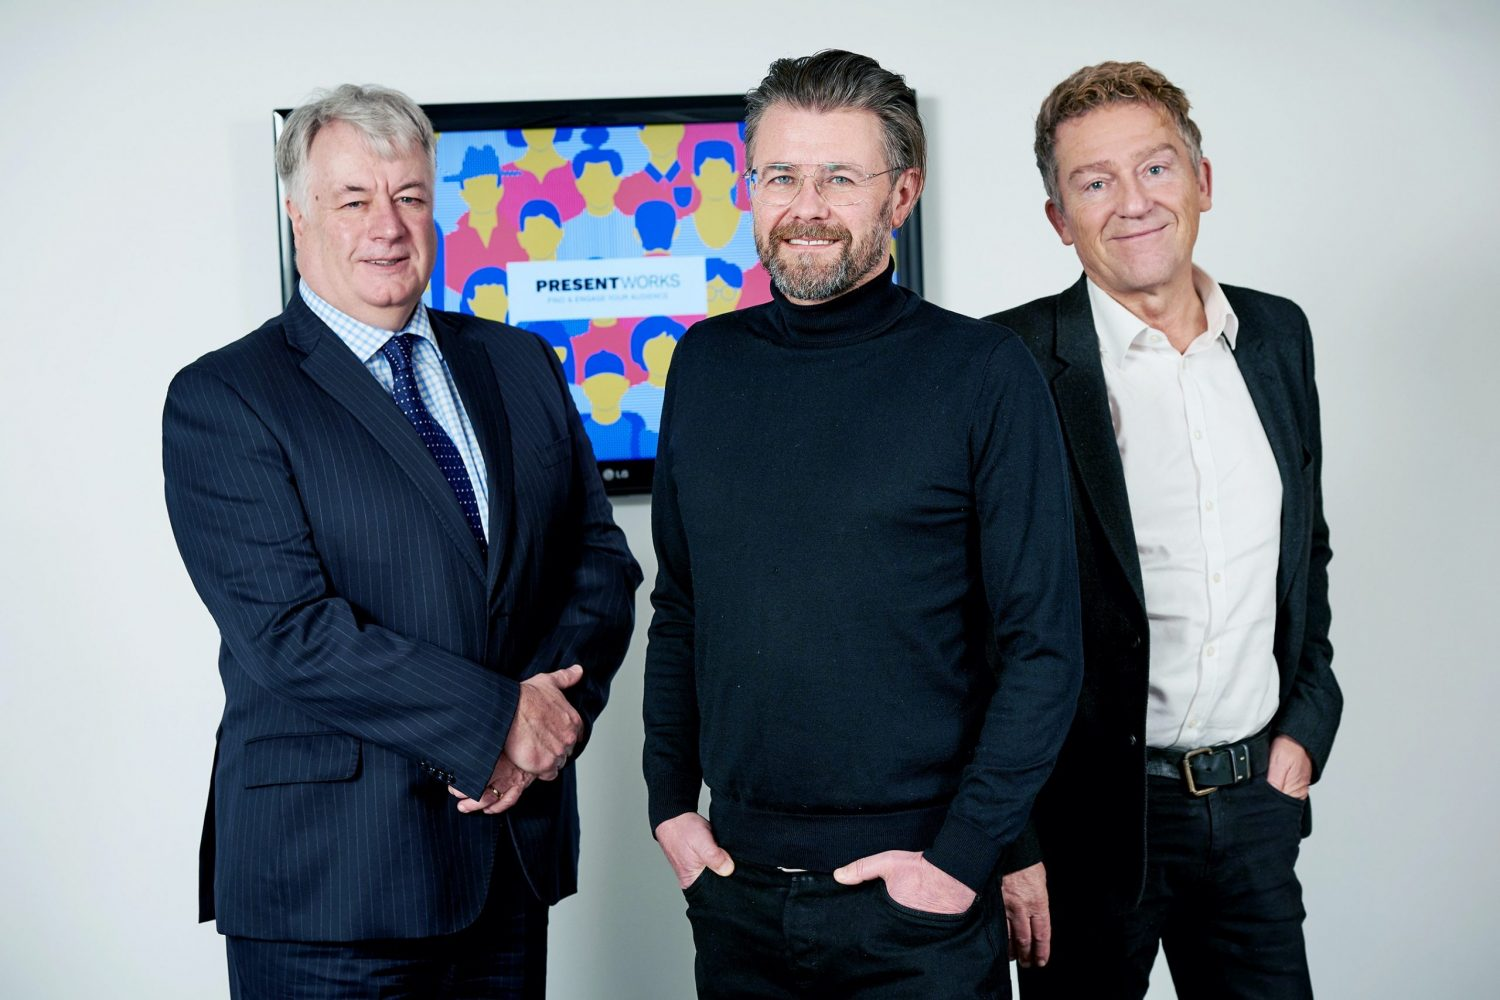 Three men standing in front of screen showing Present Works on the screen. Man to the far left is wearing a black suit with a white shirt, man in the middle has a beard and is wearing a black jumper and black trousers and man at the far left has grey hair and is wearing a blue suit, a checked shirt and blue tie.